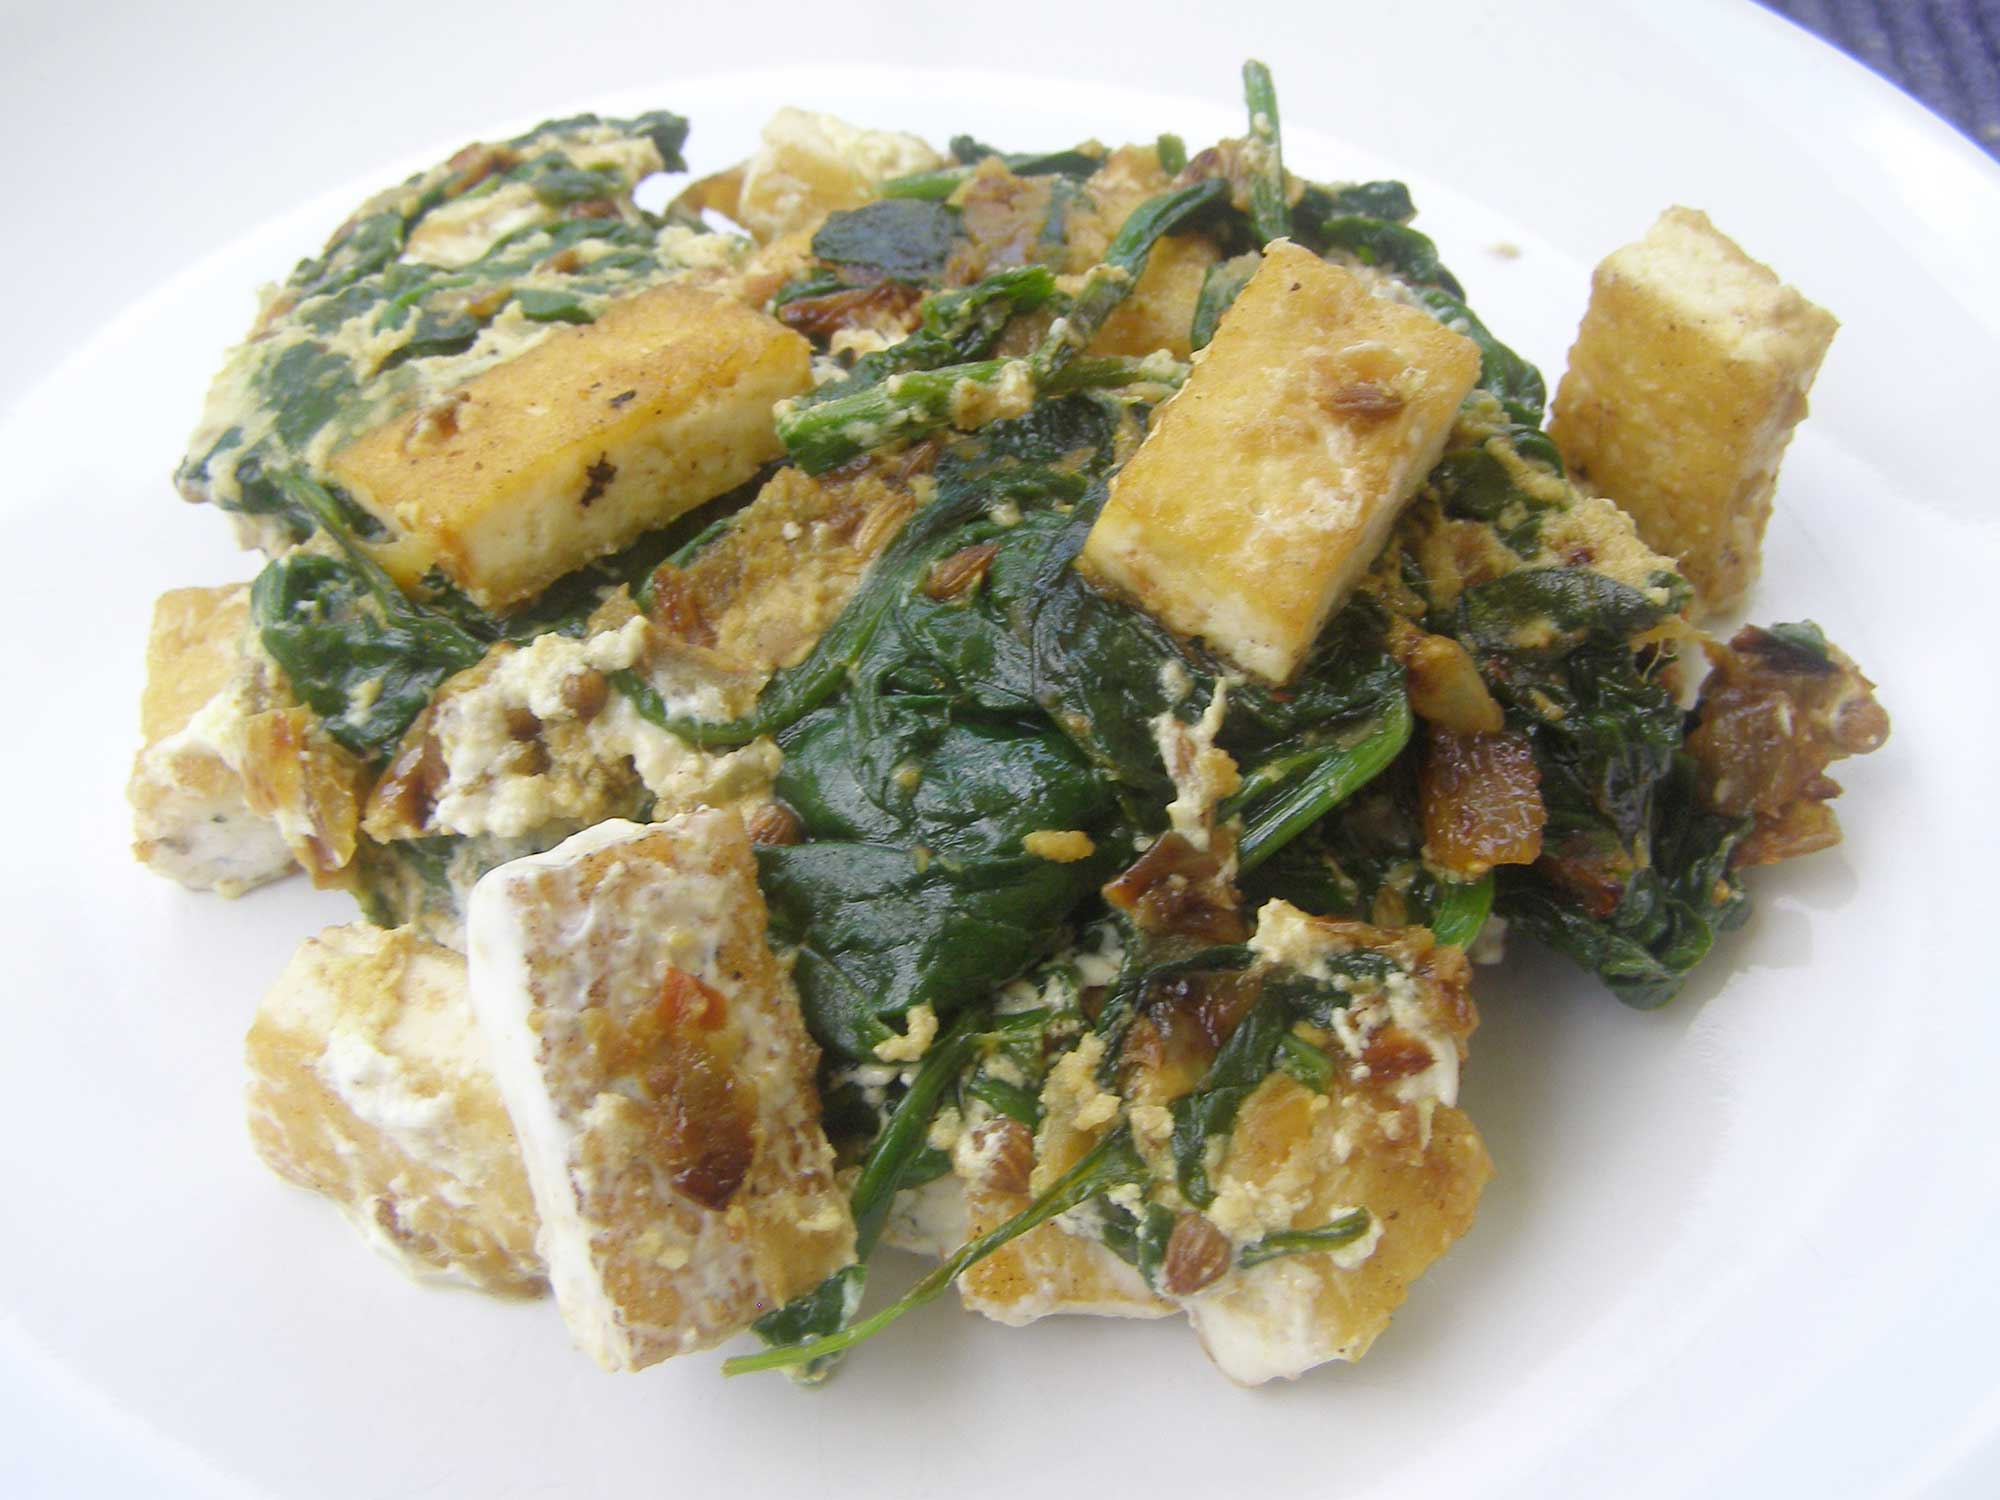 Tofu Saag Paneer For One - Delicious, Nutritious, Low